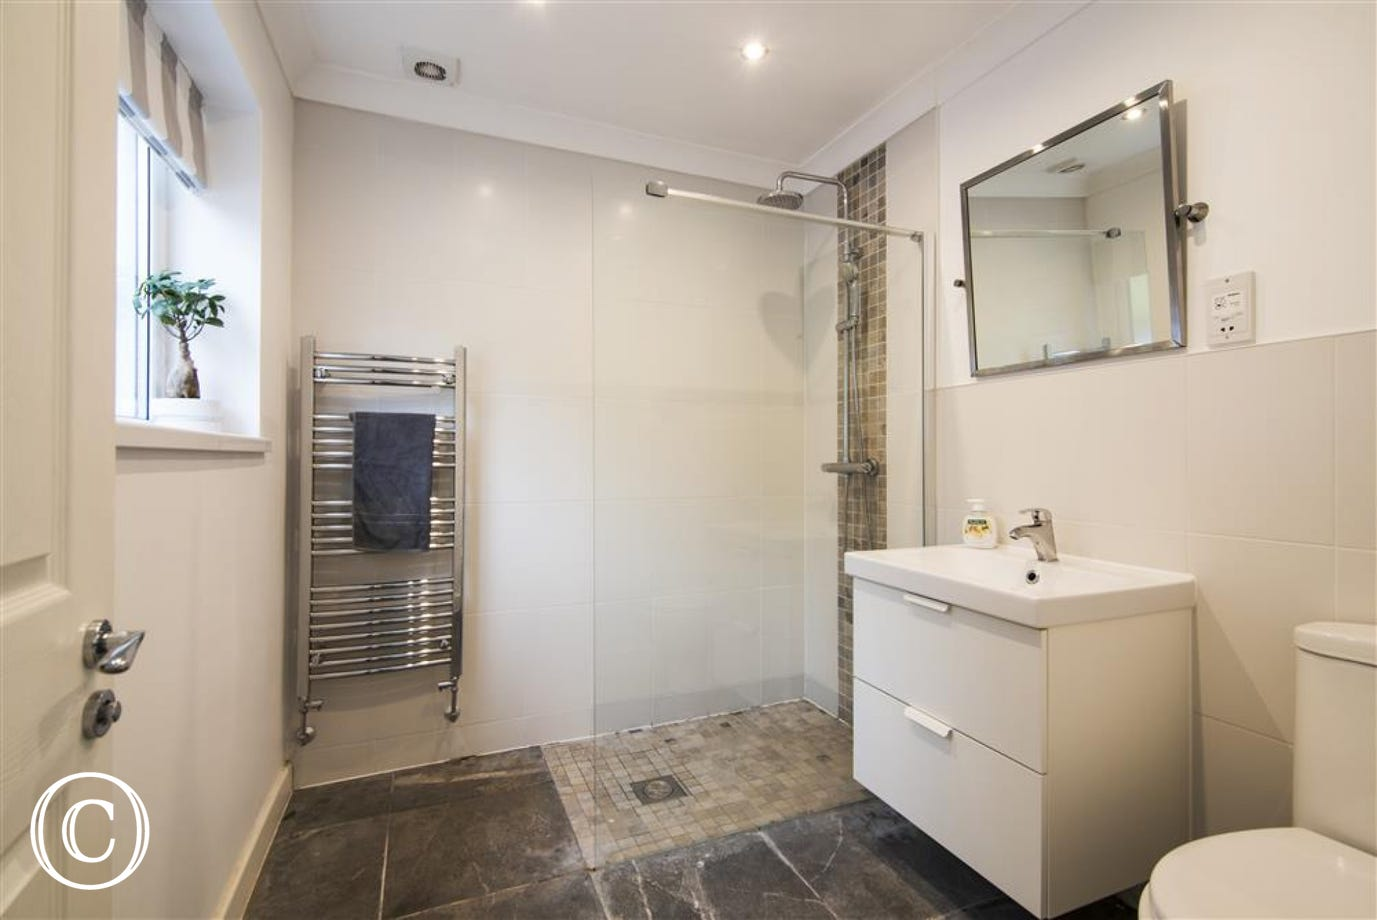 En-suite shower room to master bedroom.